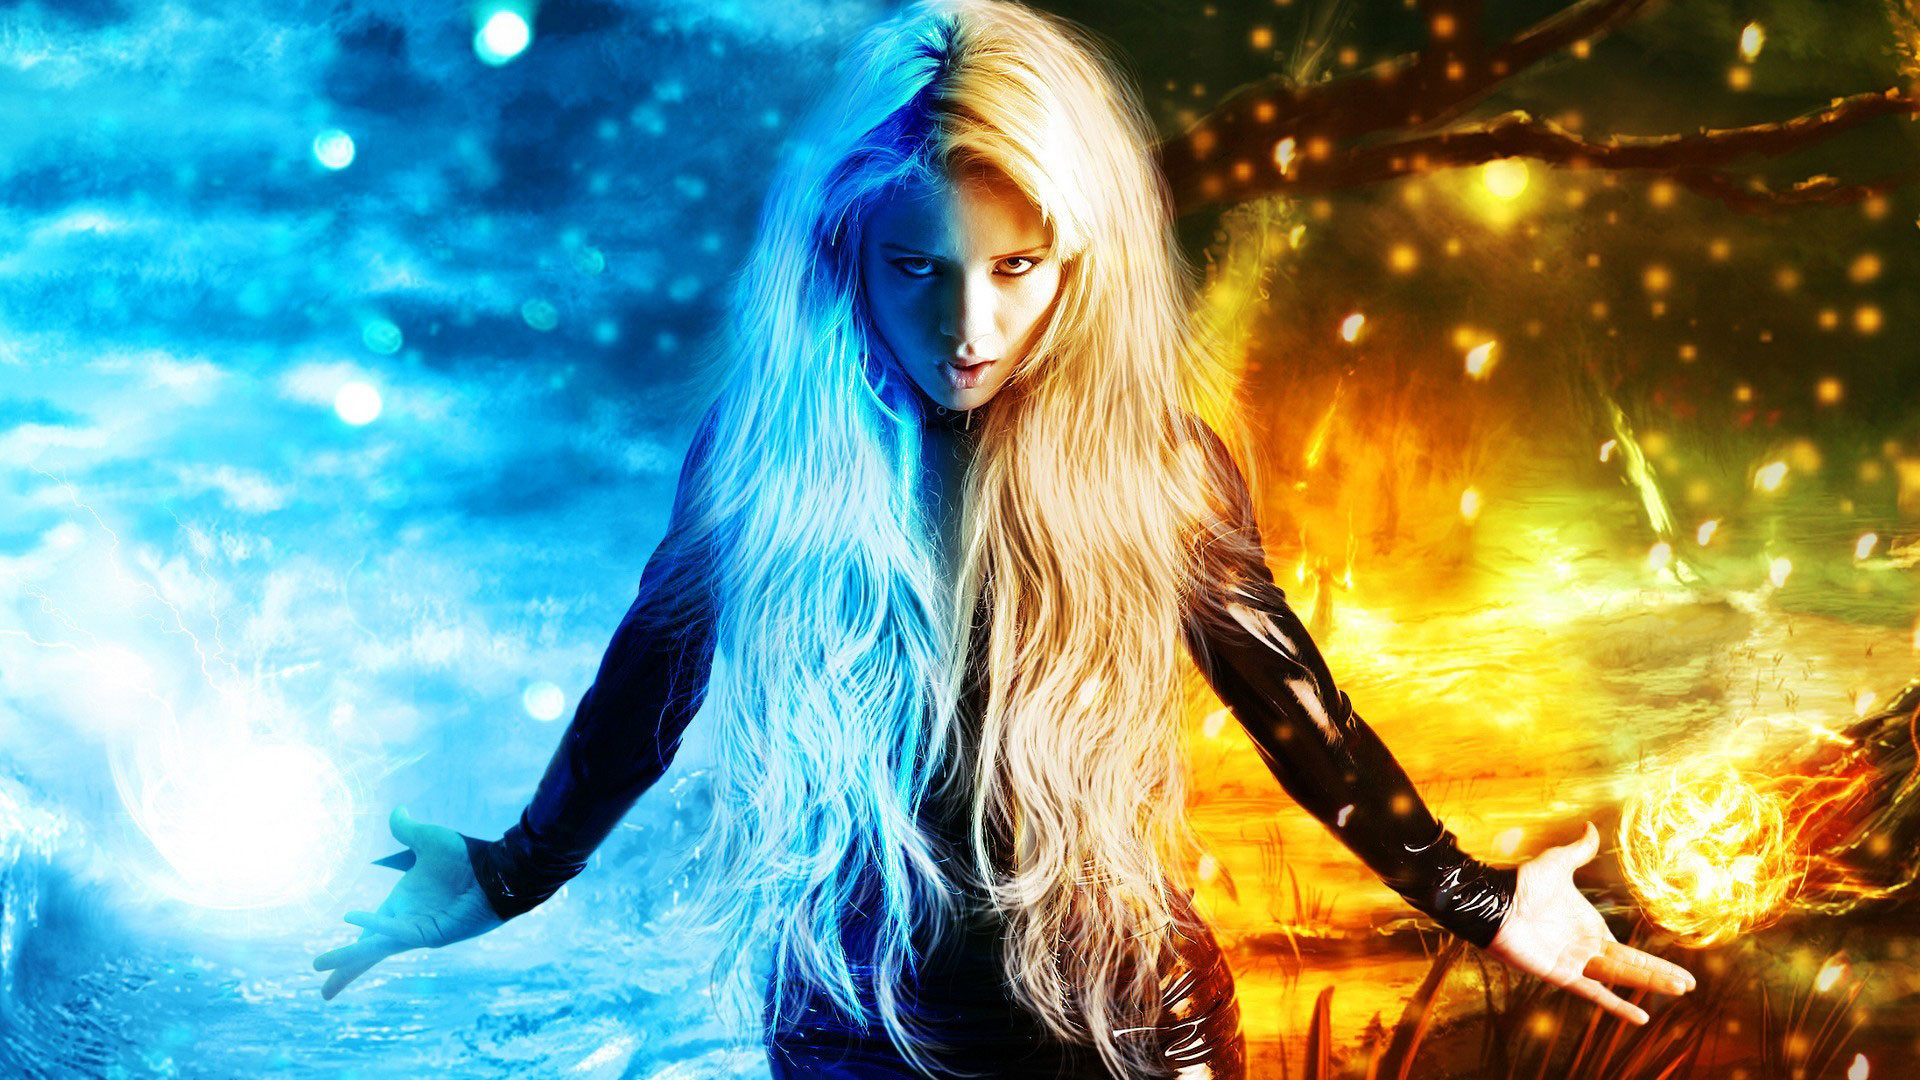 1920x1080 hd pics photos art fantasy digital art magic x men fire ice girl wallpaper